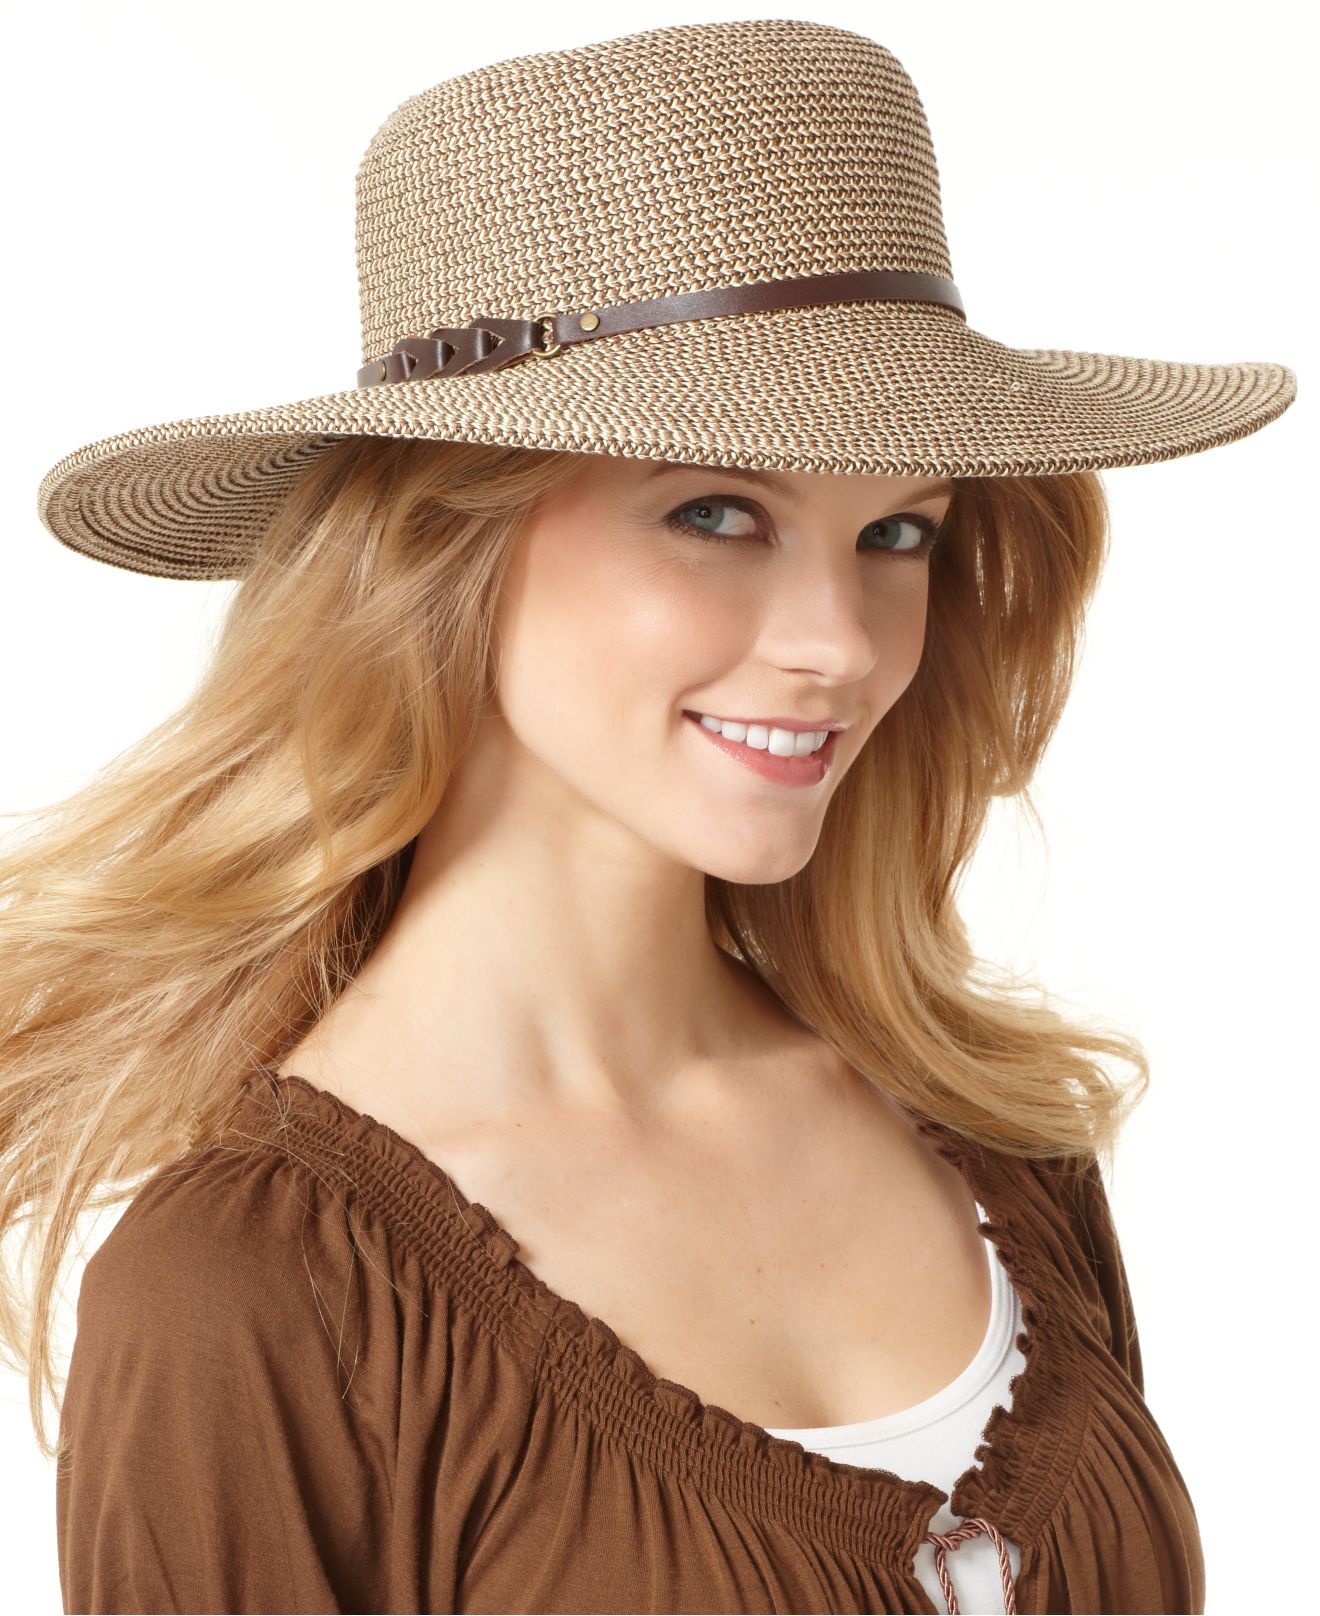 d99460c84433 Nine West Packable Straw Floppy Hat in Natural - Lyst